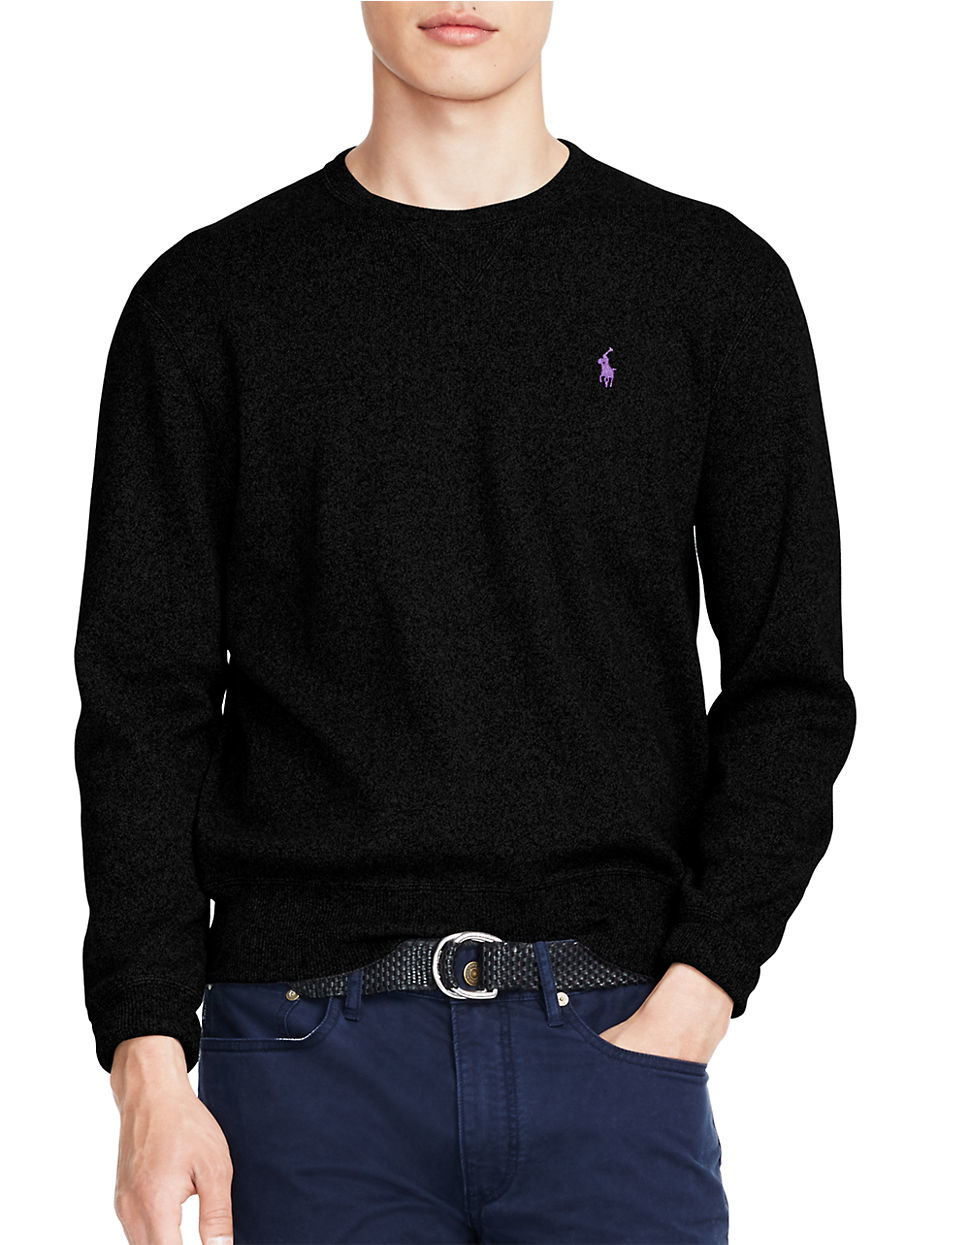 polo ralph lauren crewneck sweatshirt in black for men lyst. Black Bedroom Furniture Sets. Home Design Ideas